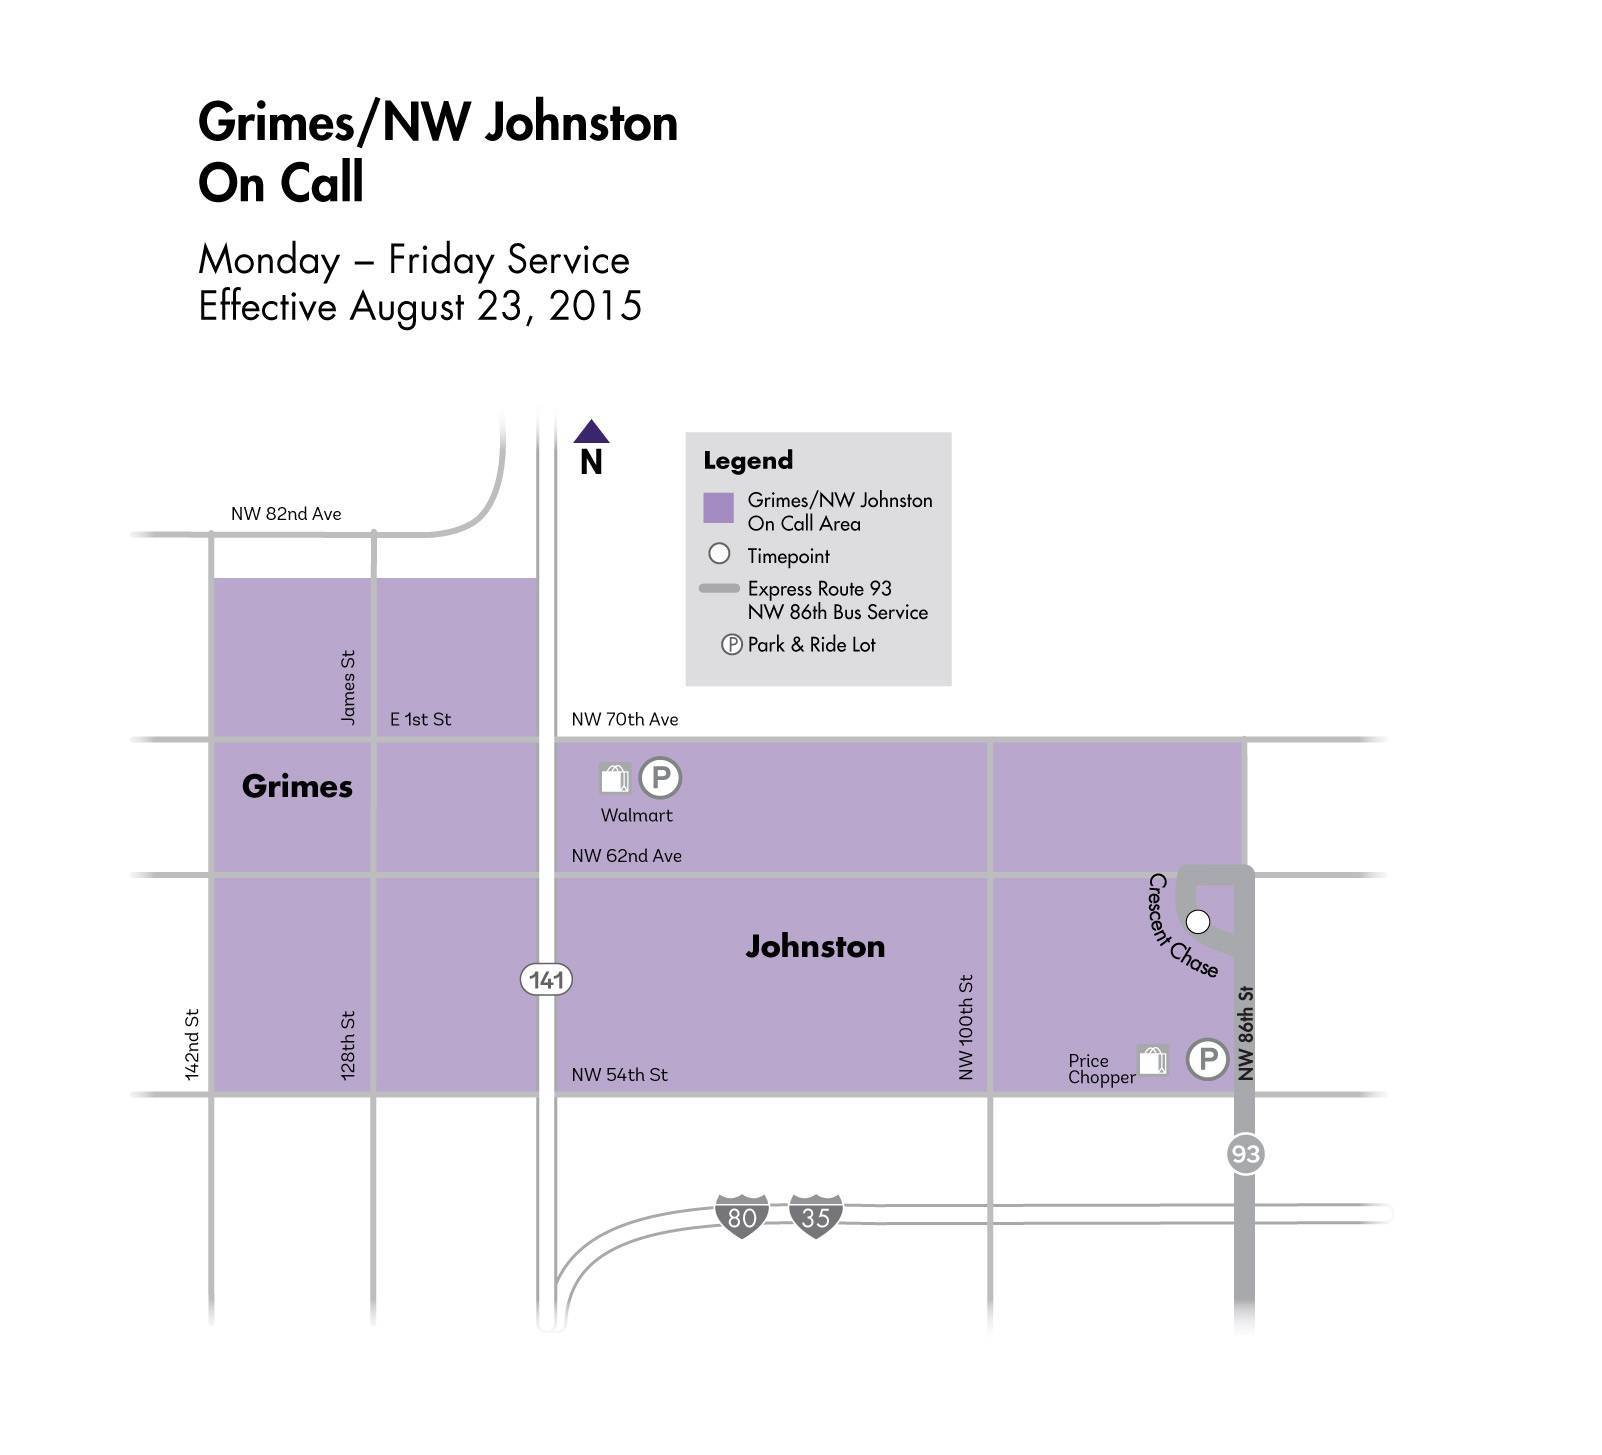 DART On Call Service - Grimes/NW Johnston Map